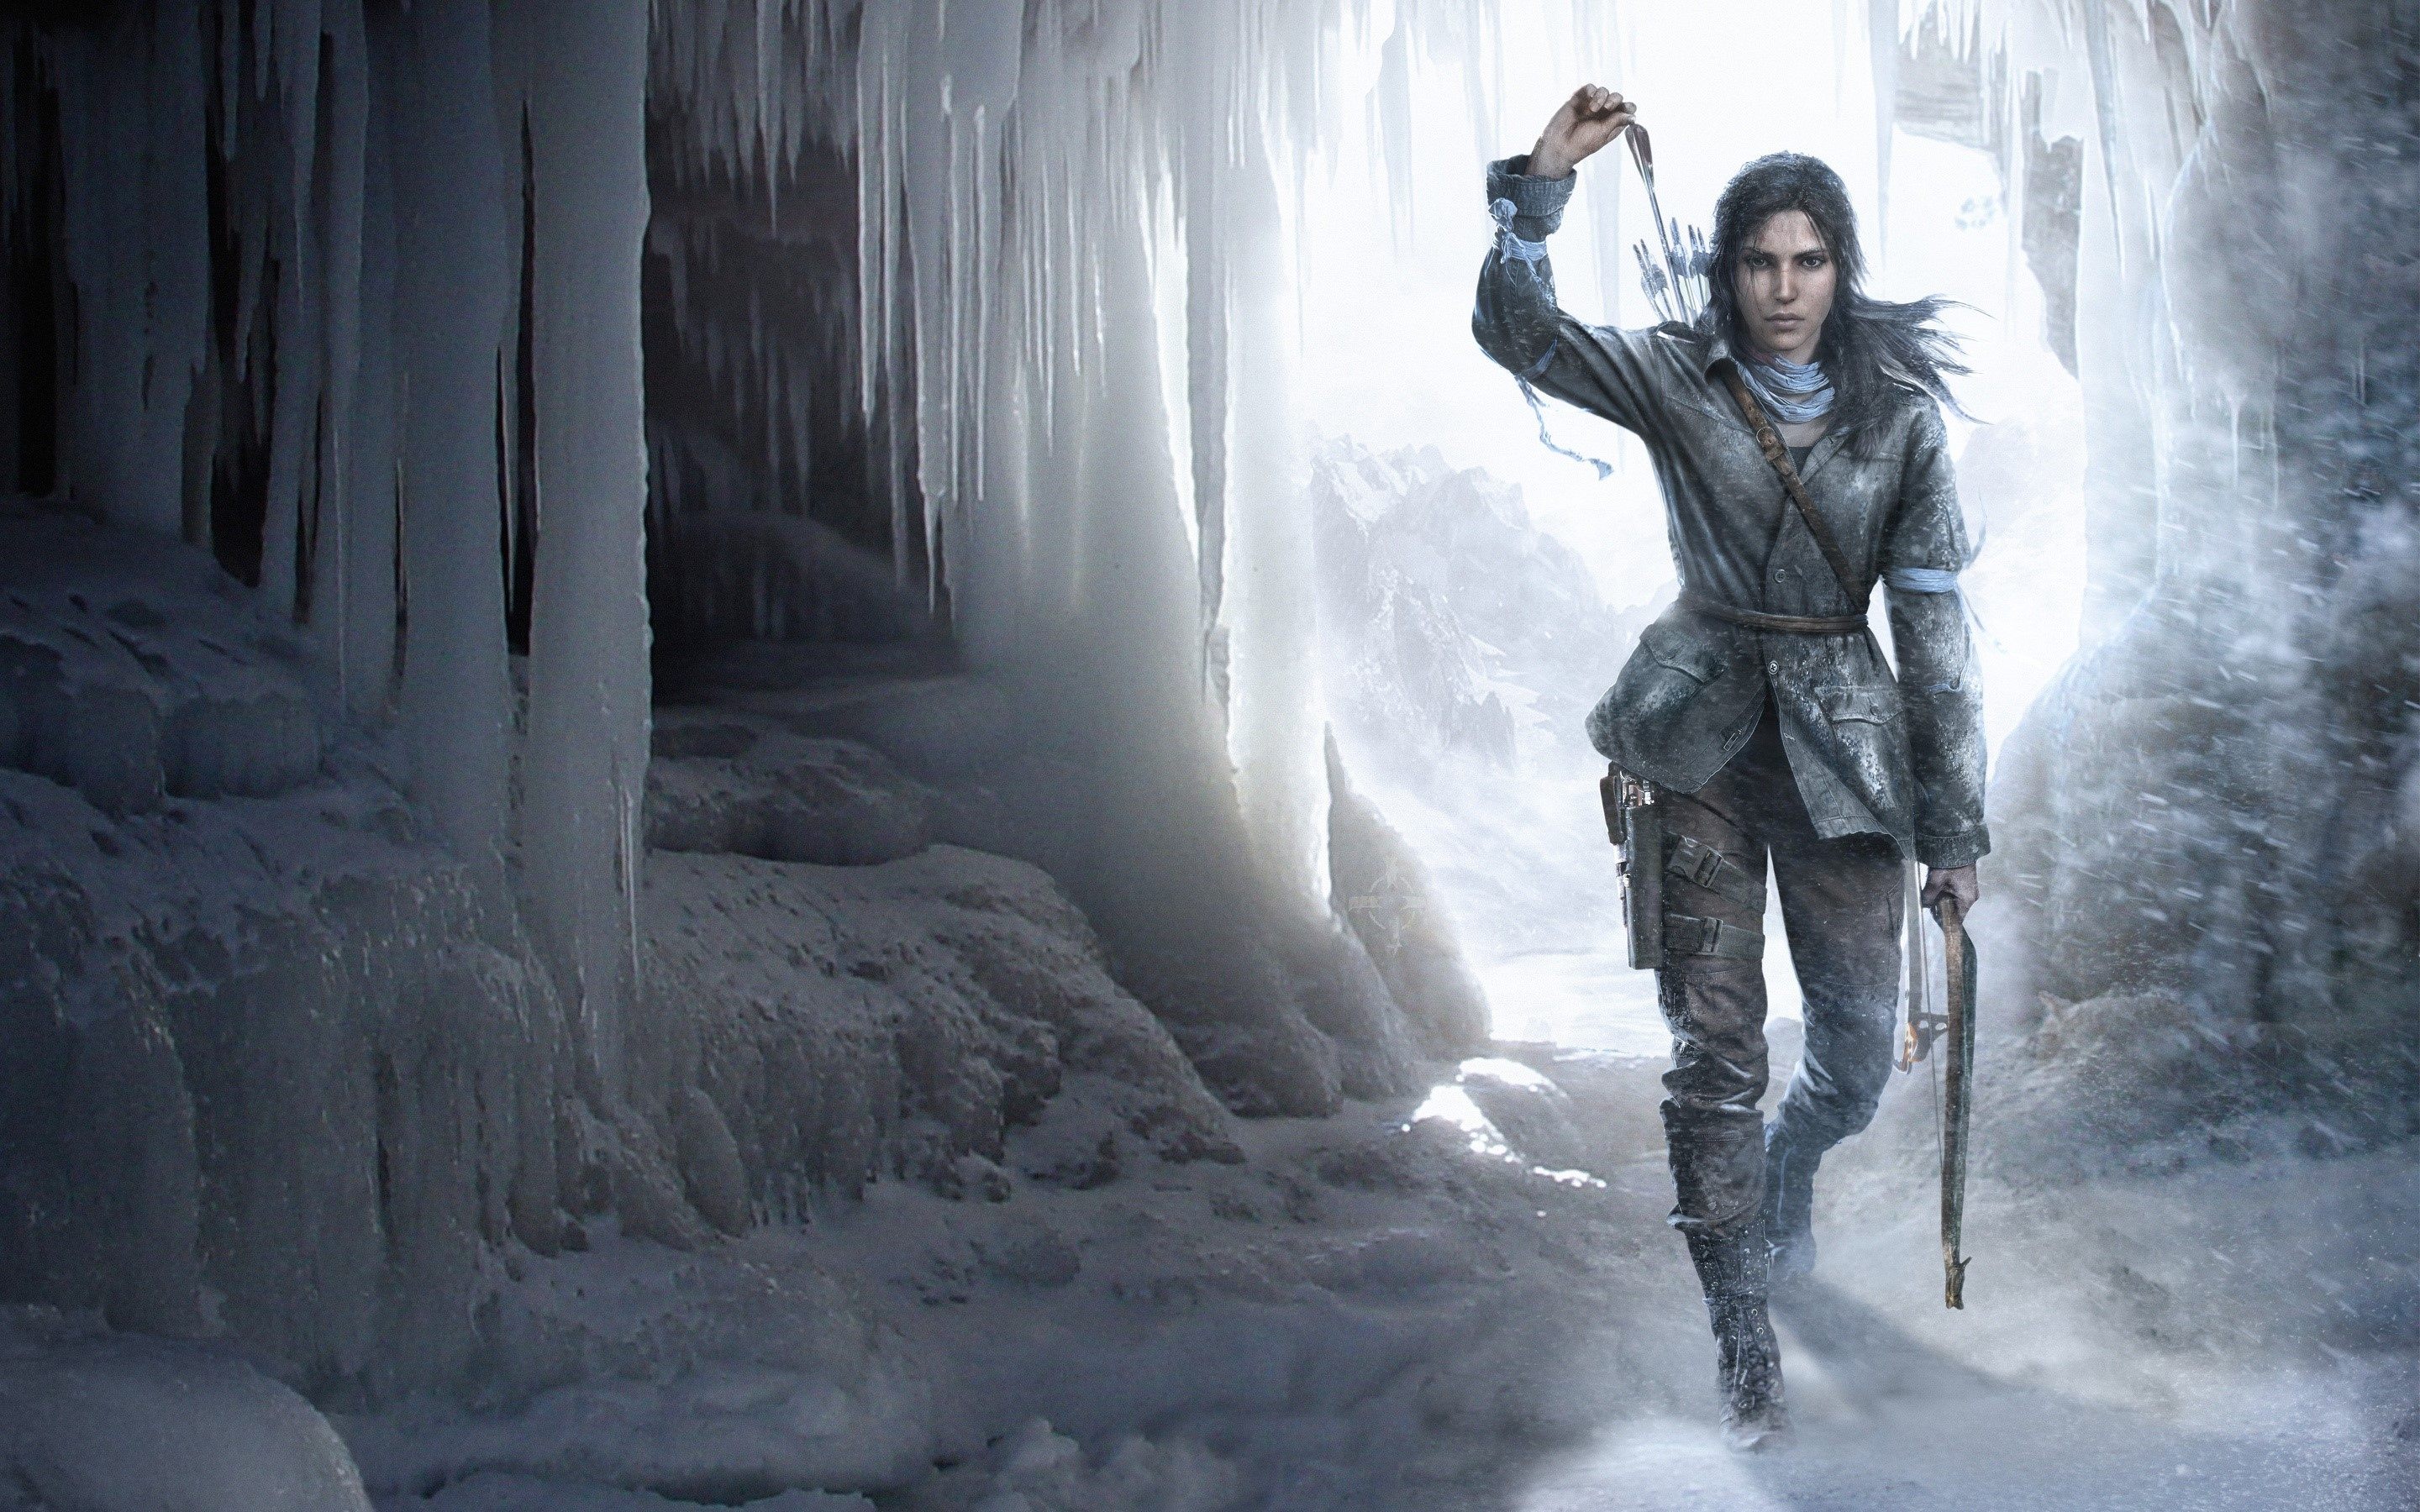 Wallpaper Rise of the Tomb Raider character